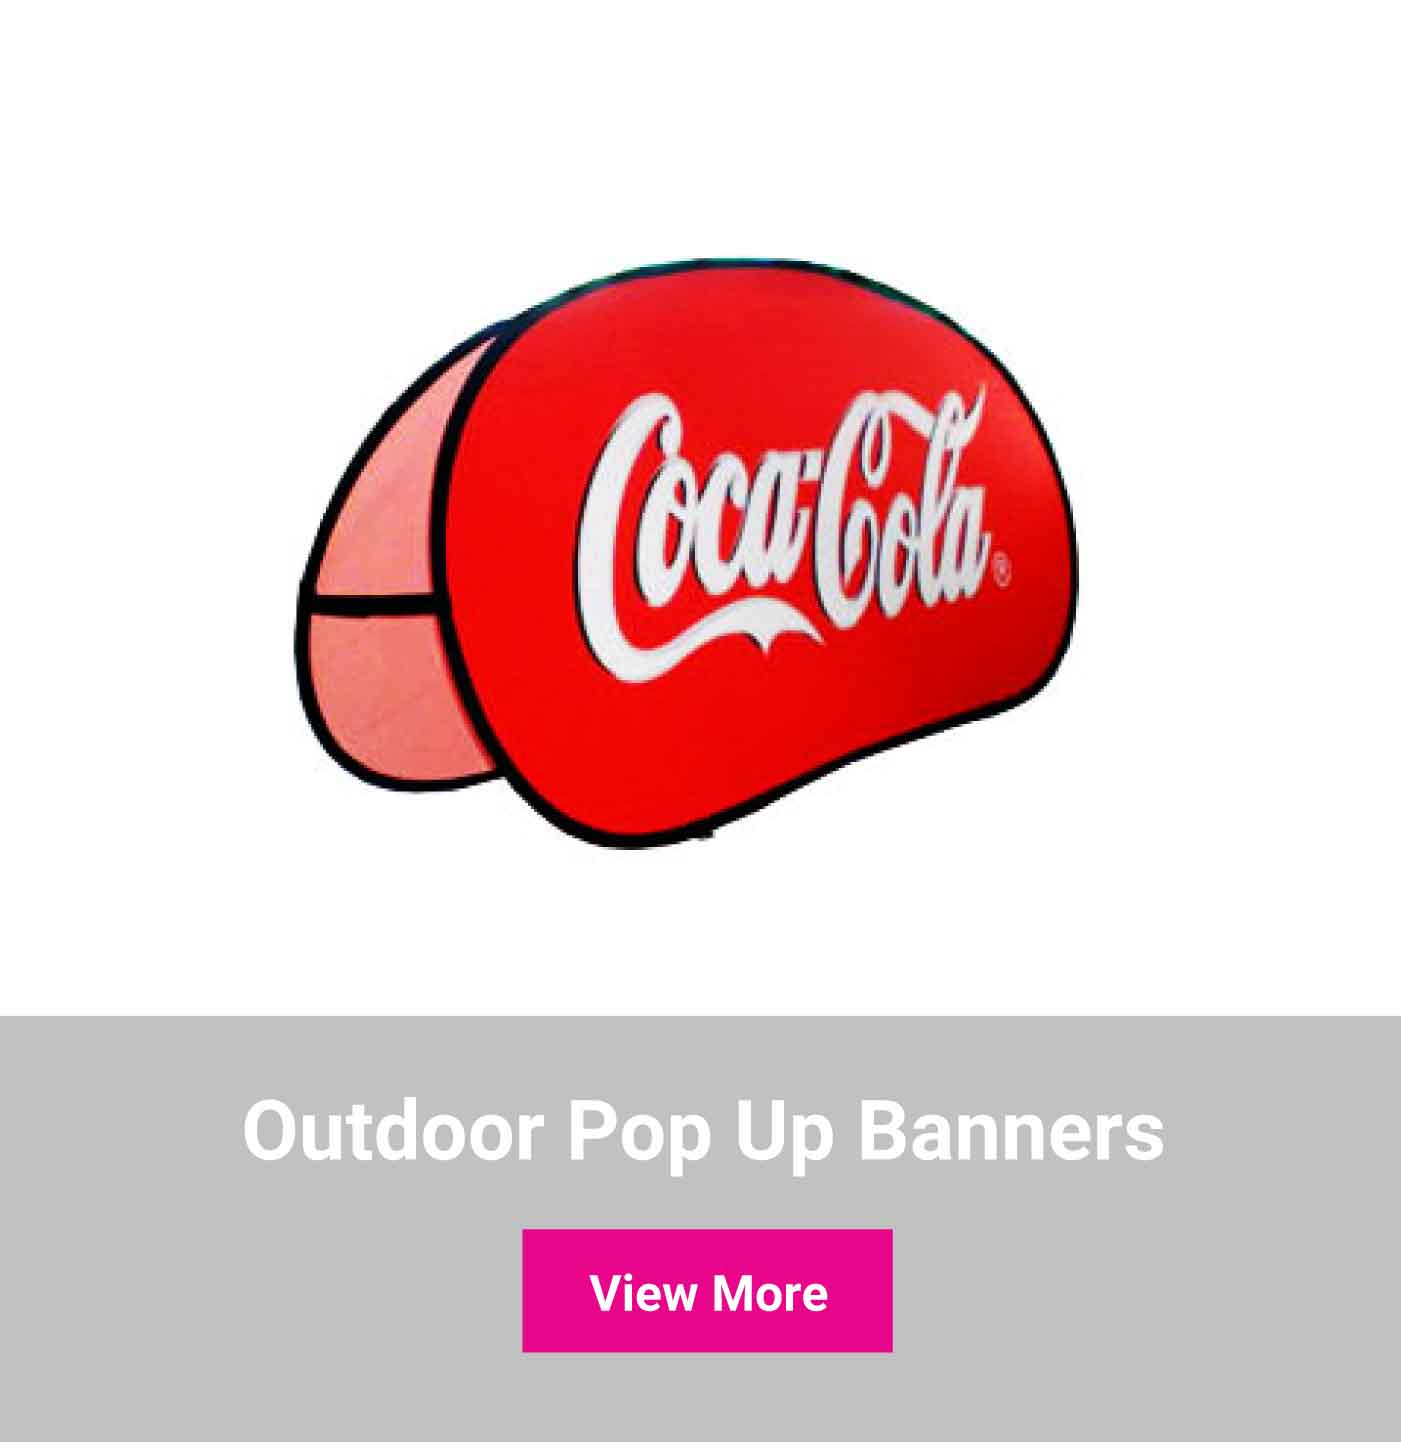 Shop outdoor pop up banners